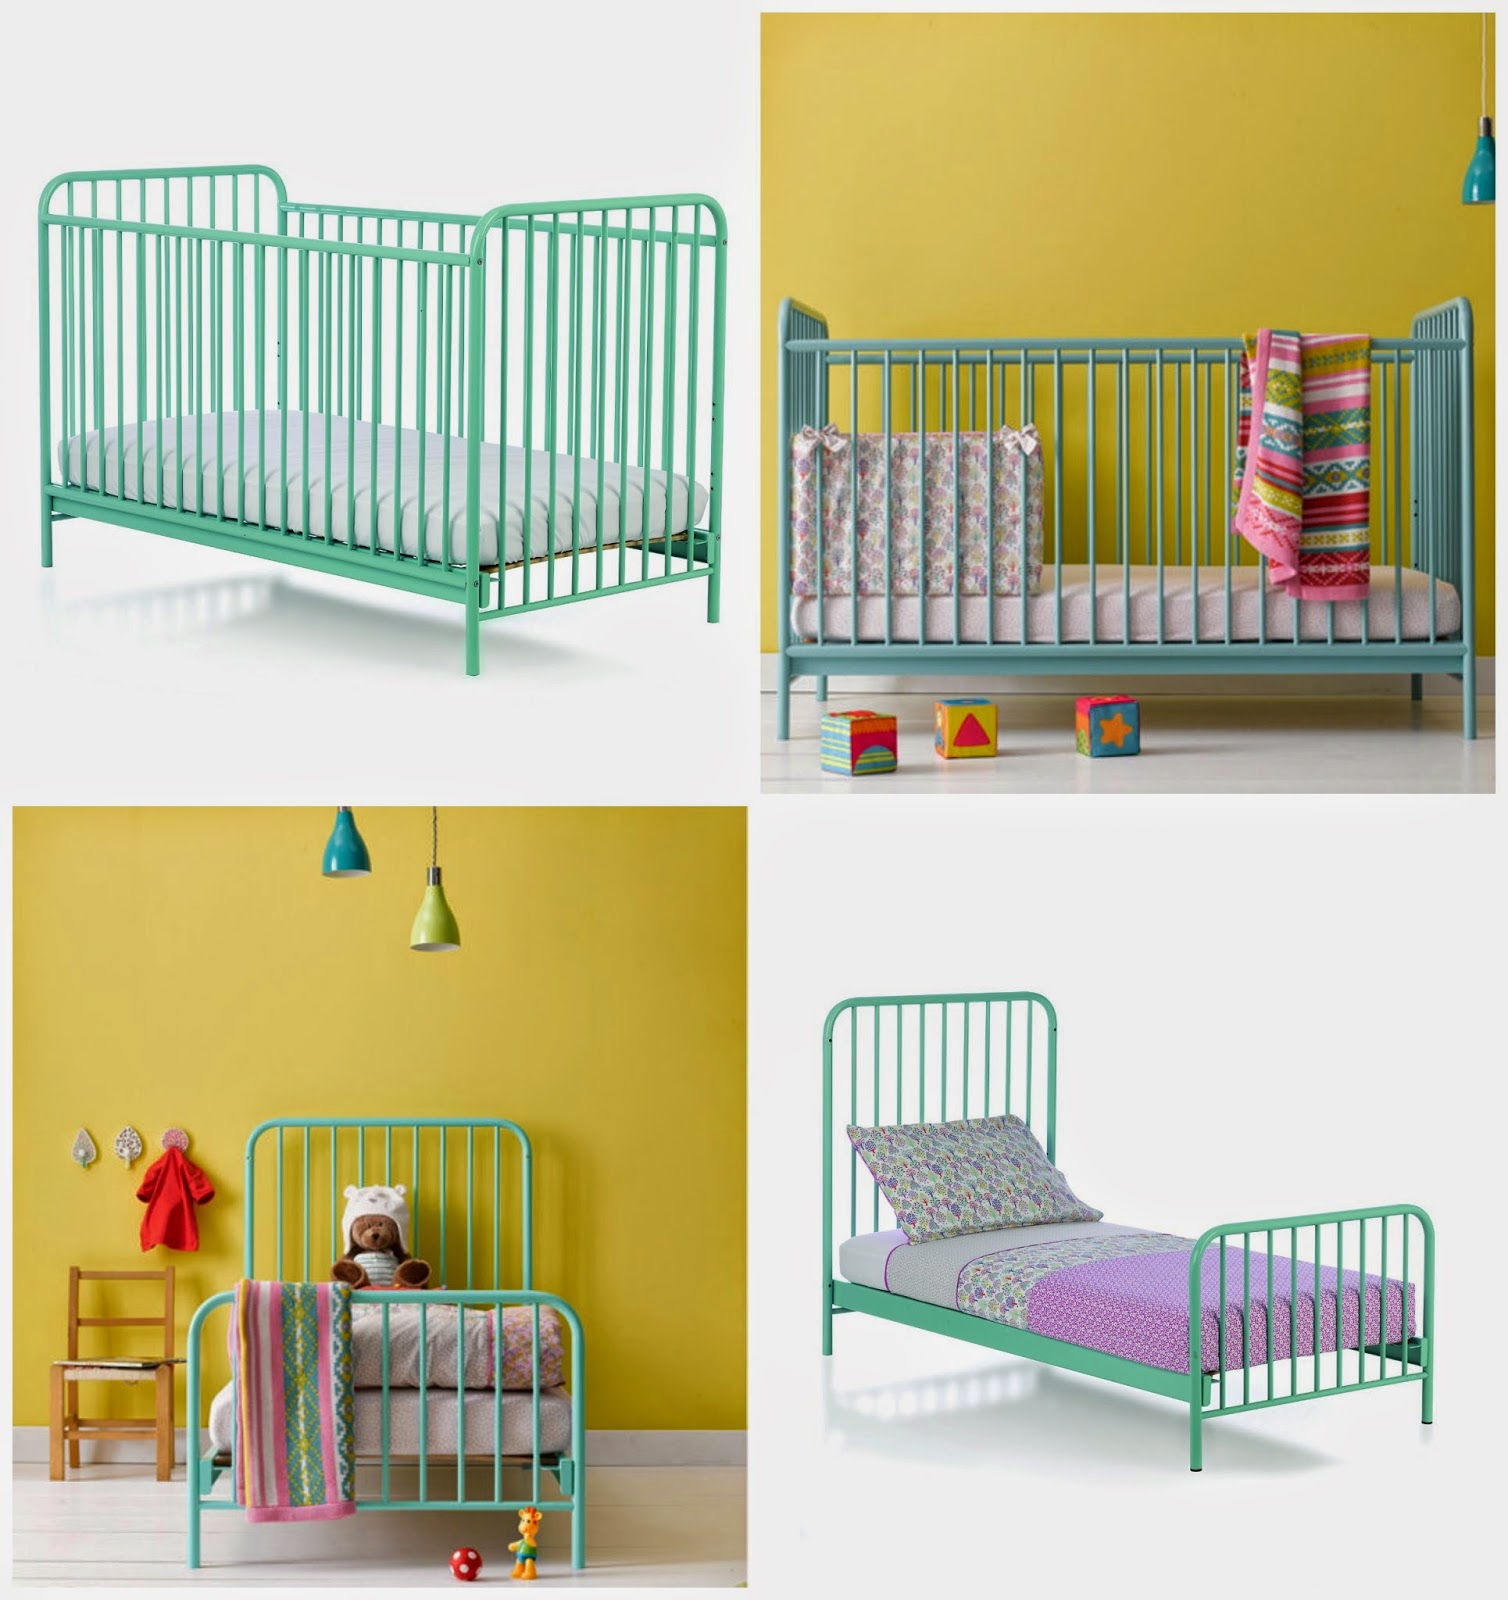 mamasVIB | V. I. BUYS: Welcome to #mamamondays… Puffin Rock, Mothercare metal cot-bed and family pictures! | nick junior | puffin rock | new cartoon | nickelodeon | tv | tv tv shows | puffins | toys | boden  puffin print | mothercare | cot bed | metal bed | turquoise metal cot bed | selfies | family pictures | pinterest | mamasVIB | kids bedrooms | family pictures | mamamondays | stylist | monday blog post